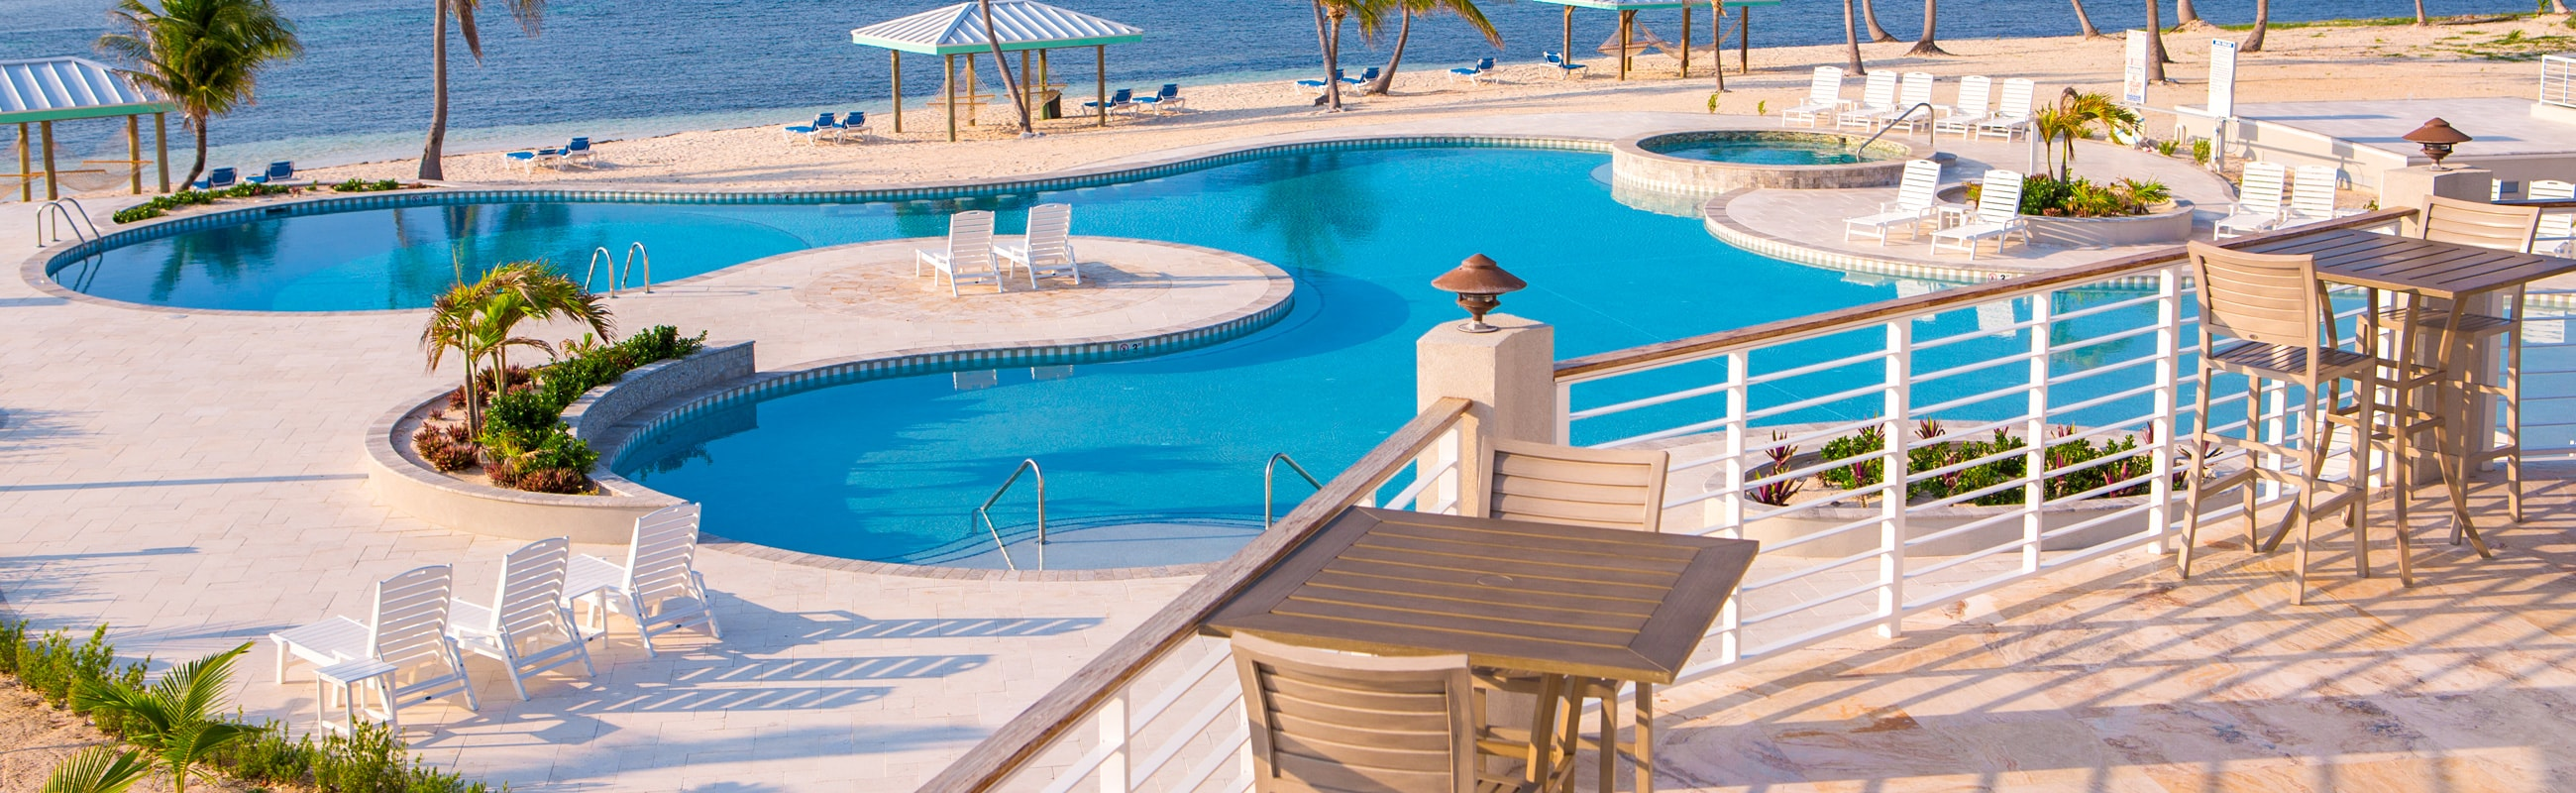 Water delights for everyone – our Caribbean beach with hammocks or our walk-in pool and jetted